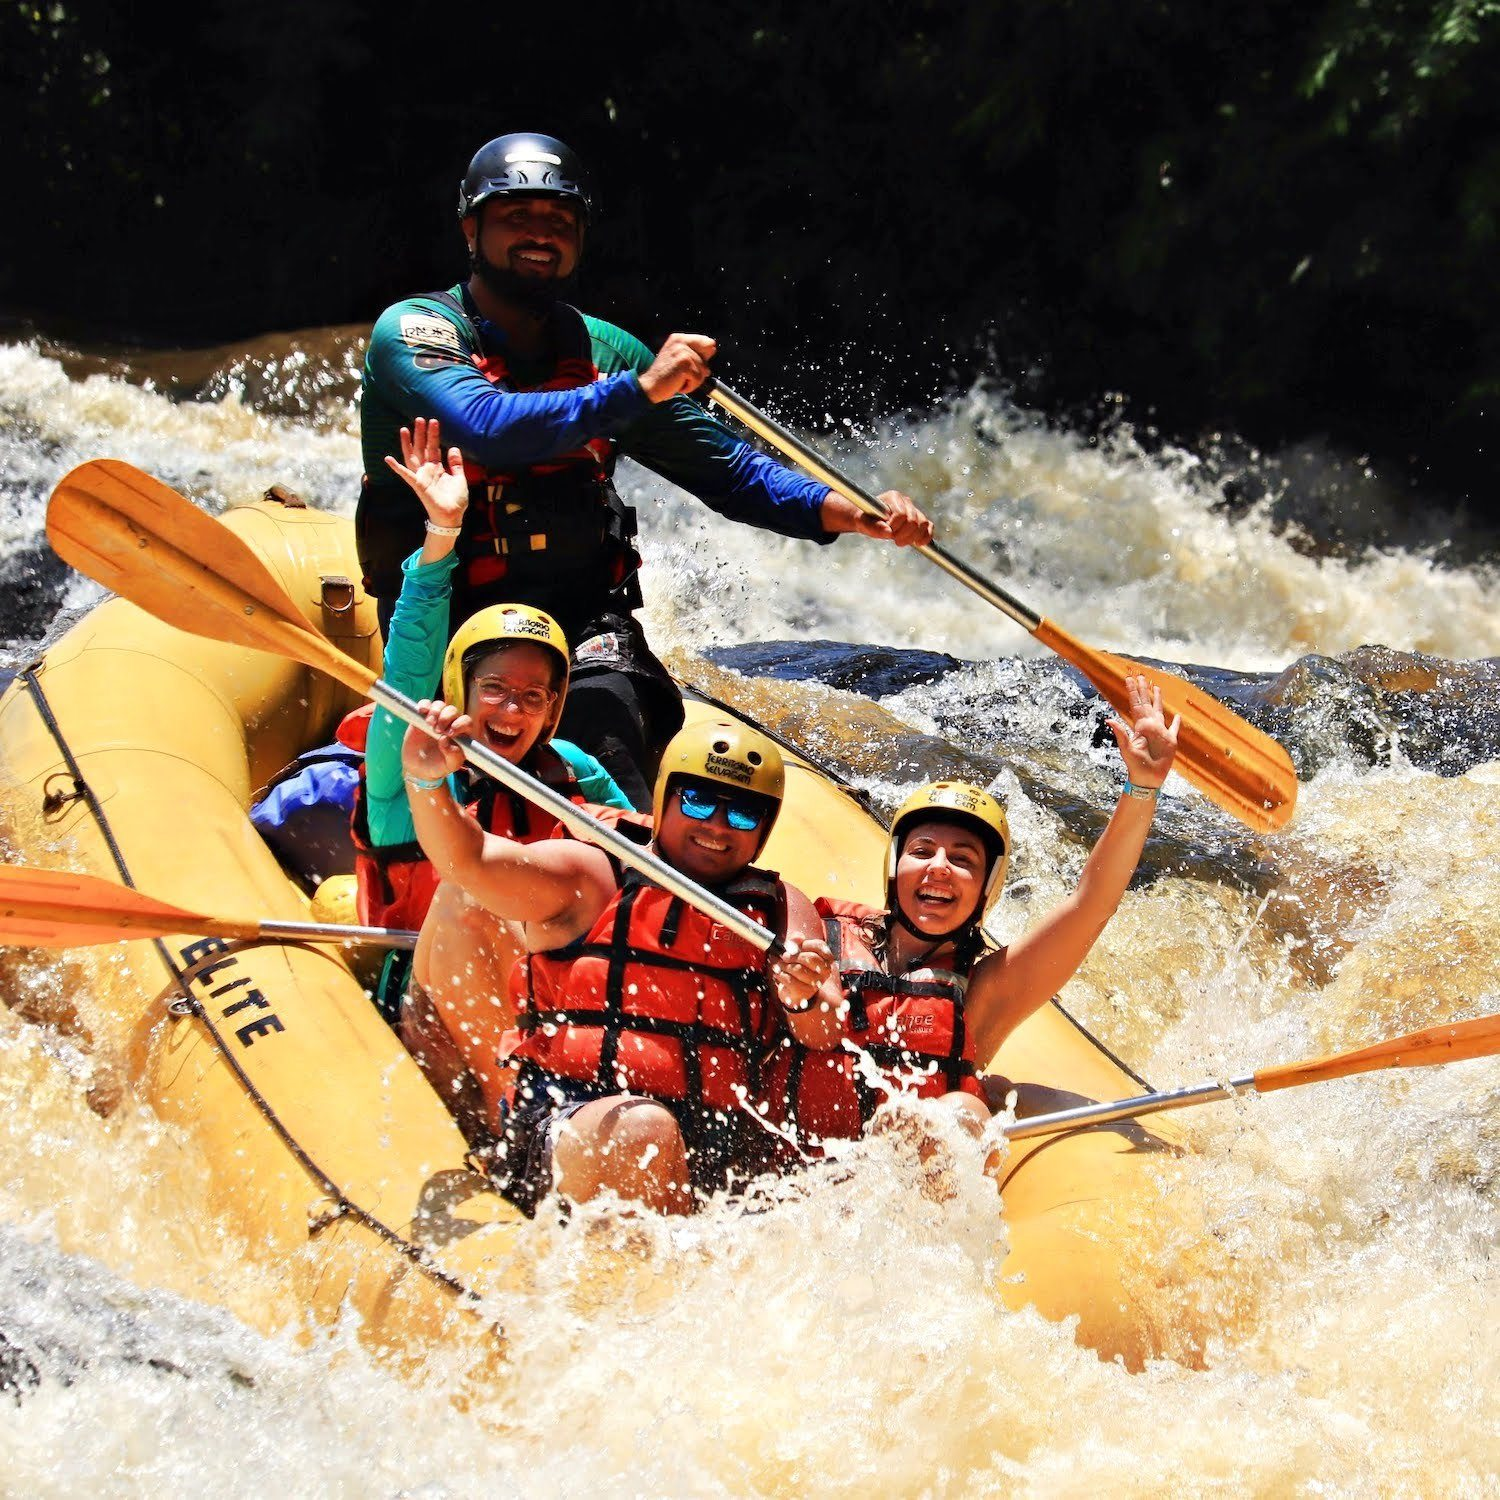 Rafting Elite - Brotas -SP (Agende sua Data)